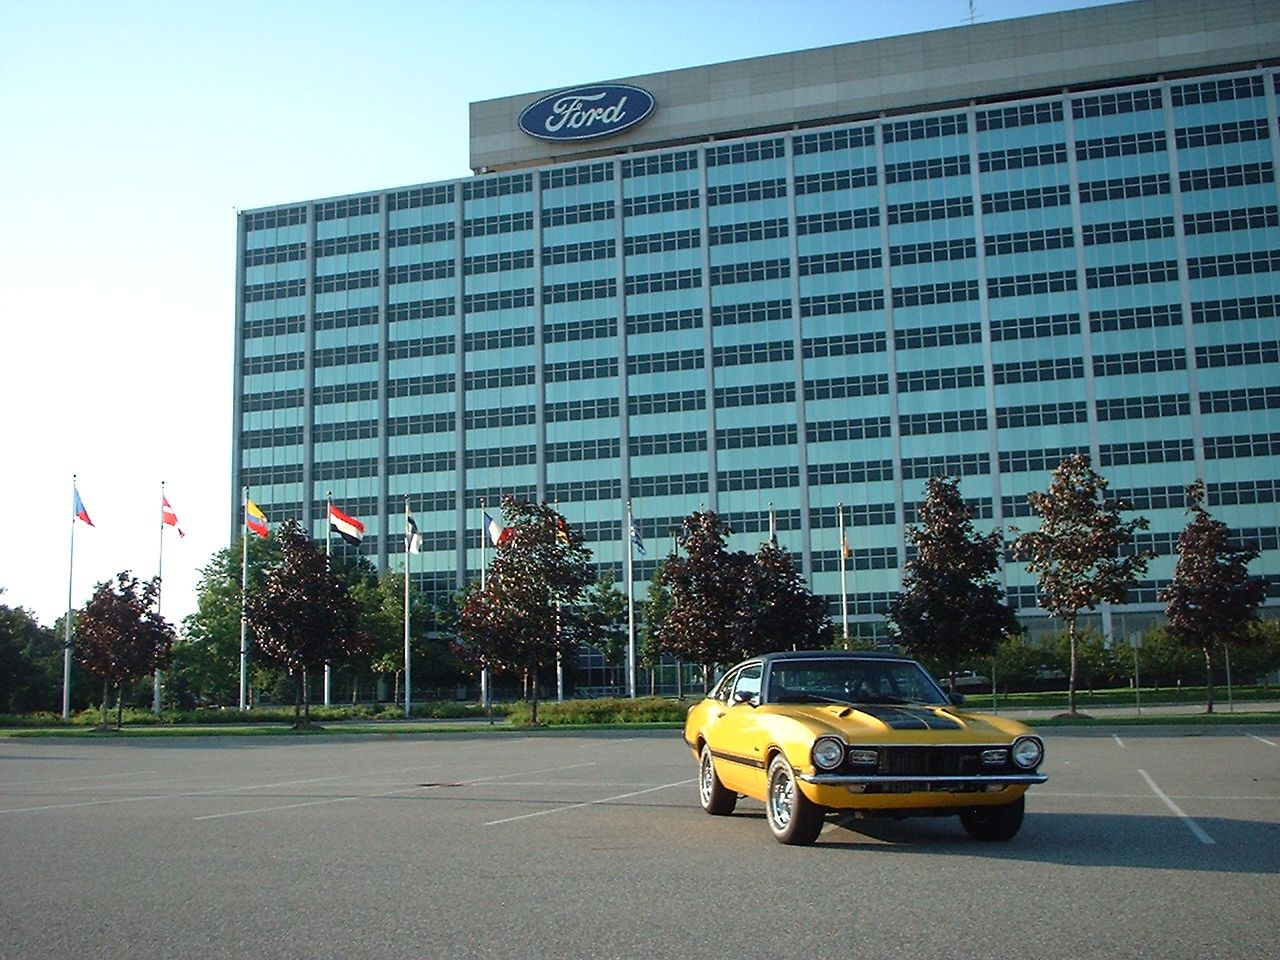 Ford Maverick Ford World Headquarters In Dearborn Michigan Maverick Comet Media Ford Maverick Ford Motor Company Dearborn Michigan